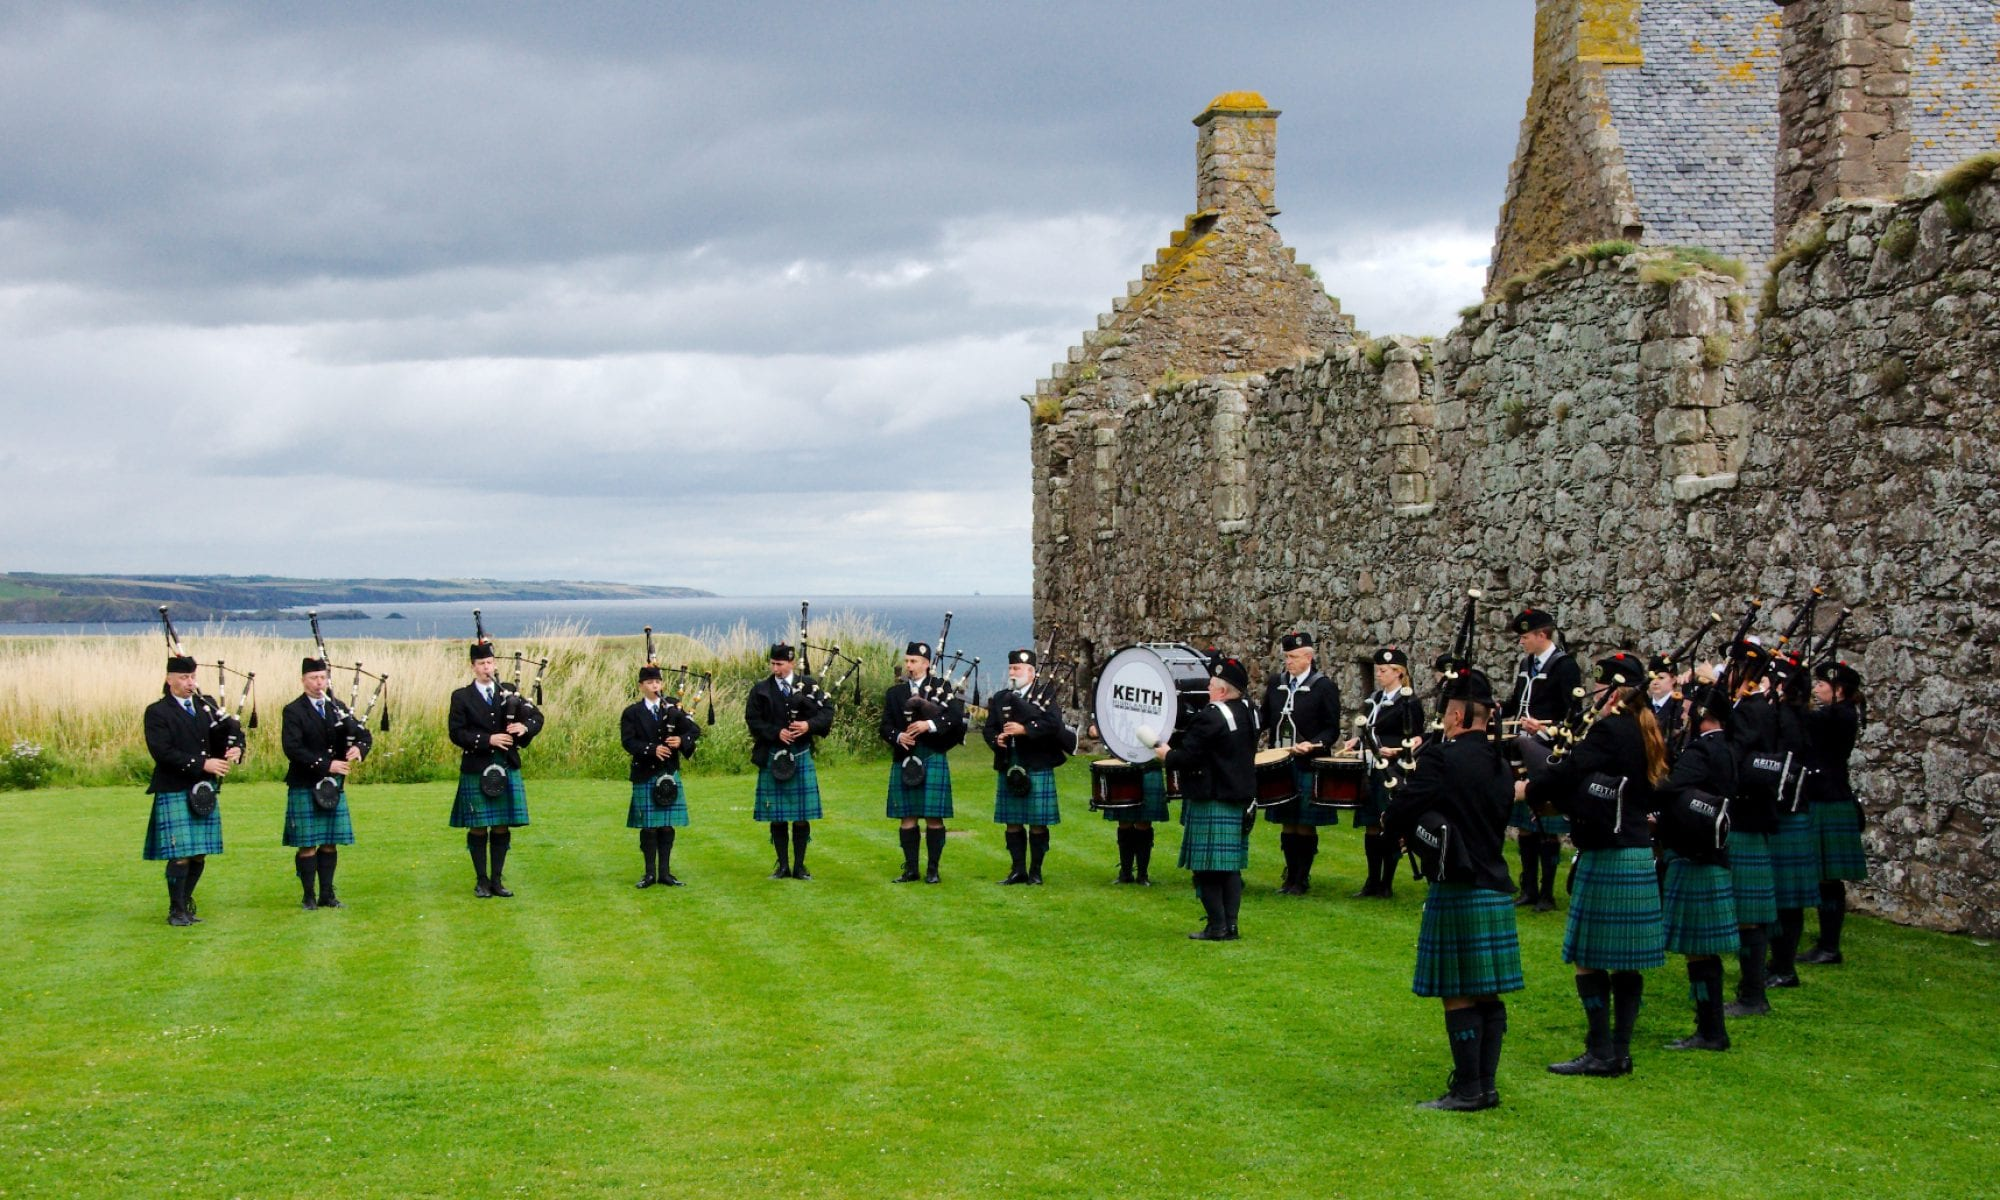 Keith Highlanders Pipe Band